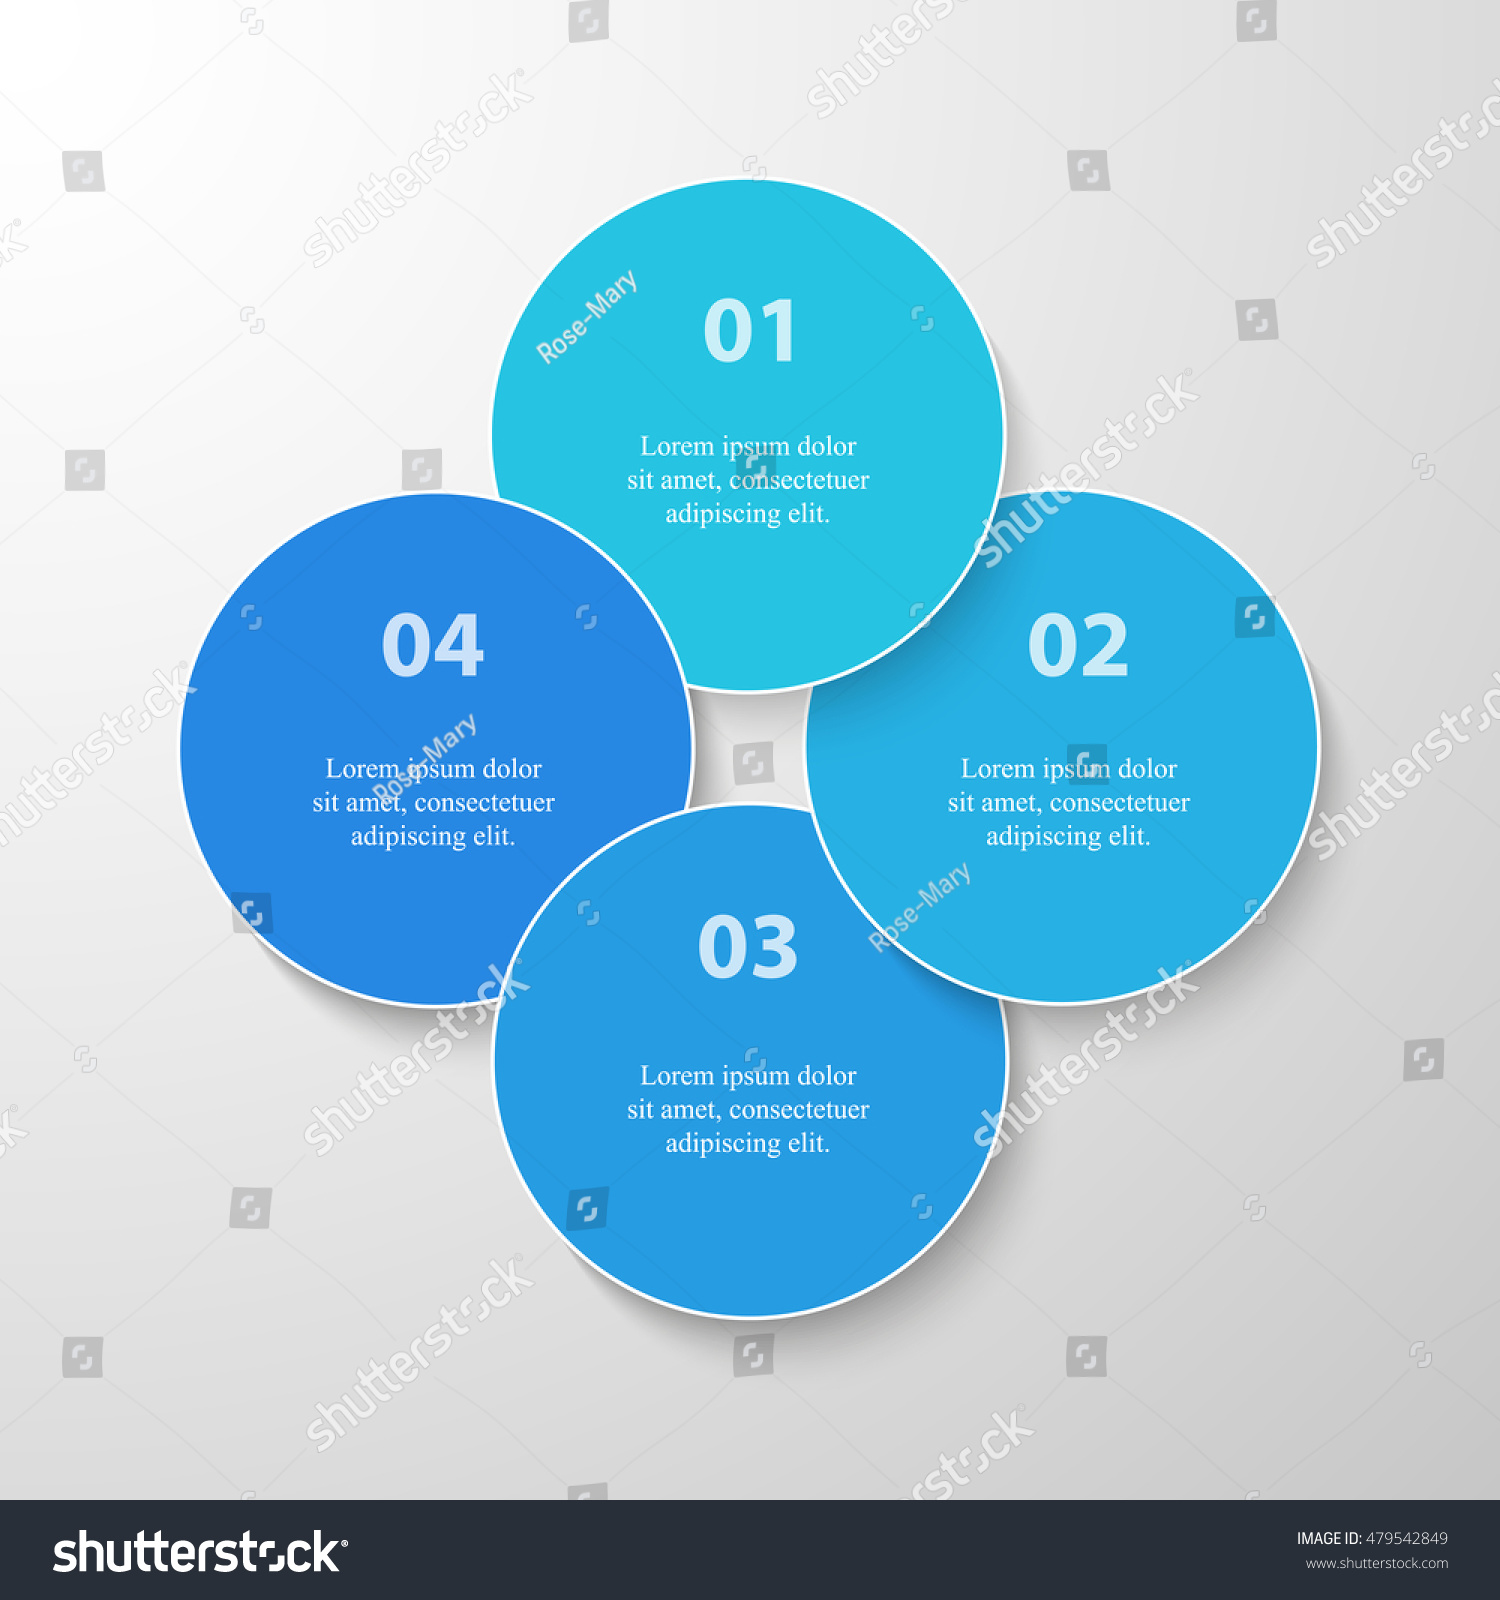 Diagram Of A Slug Free Wiring For You White Blood Cell Labeled Images Pictures Becuo Online Image Photo Editor Shutterstock Lg Dle2240w Dryer Light